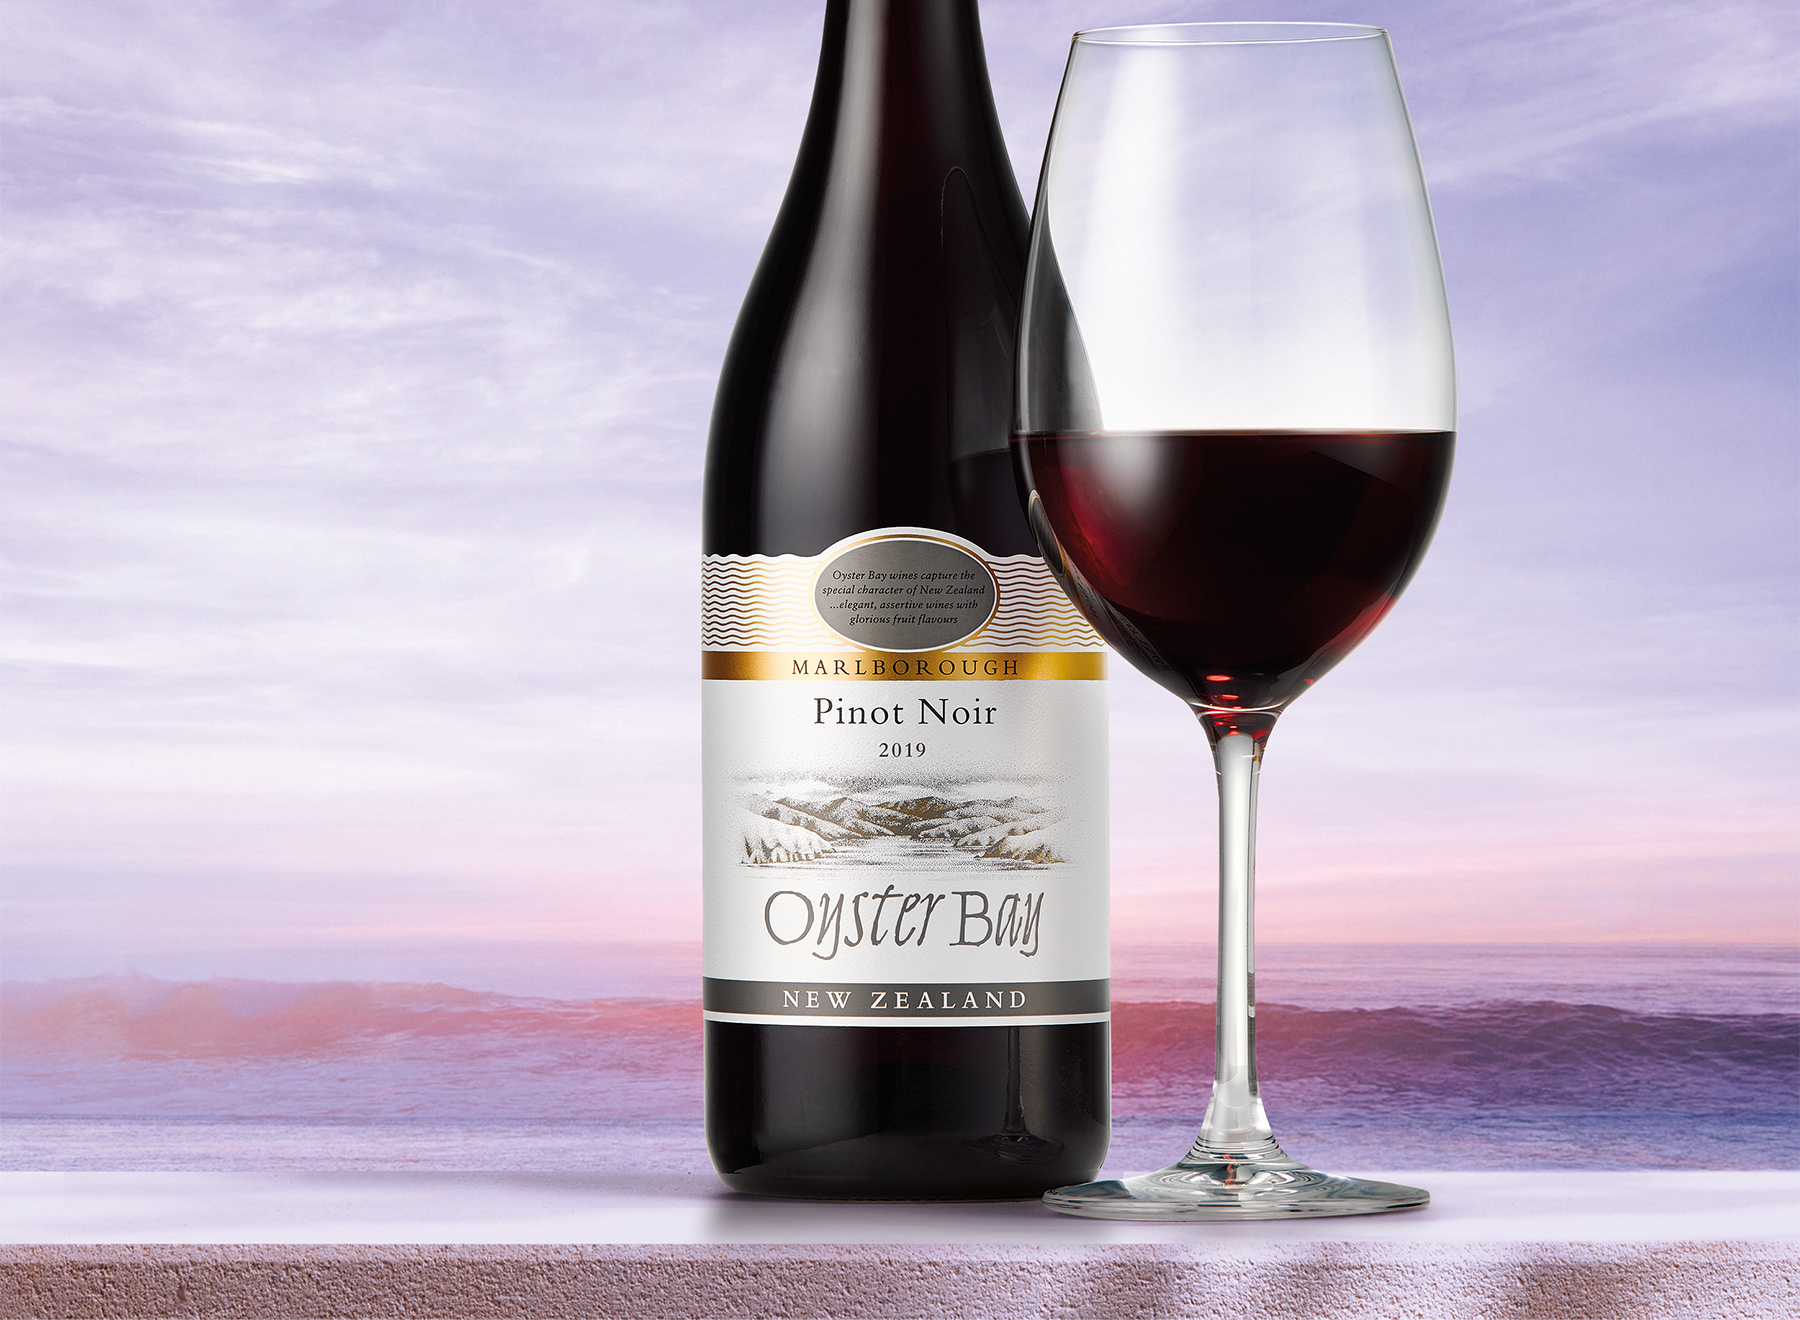 2019 oyster bay marlborough pinot noir bottle glass ledge